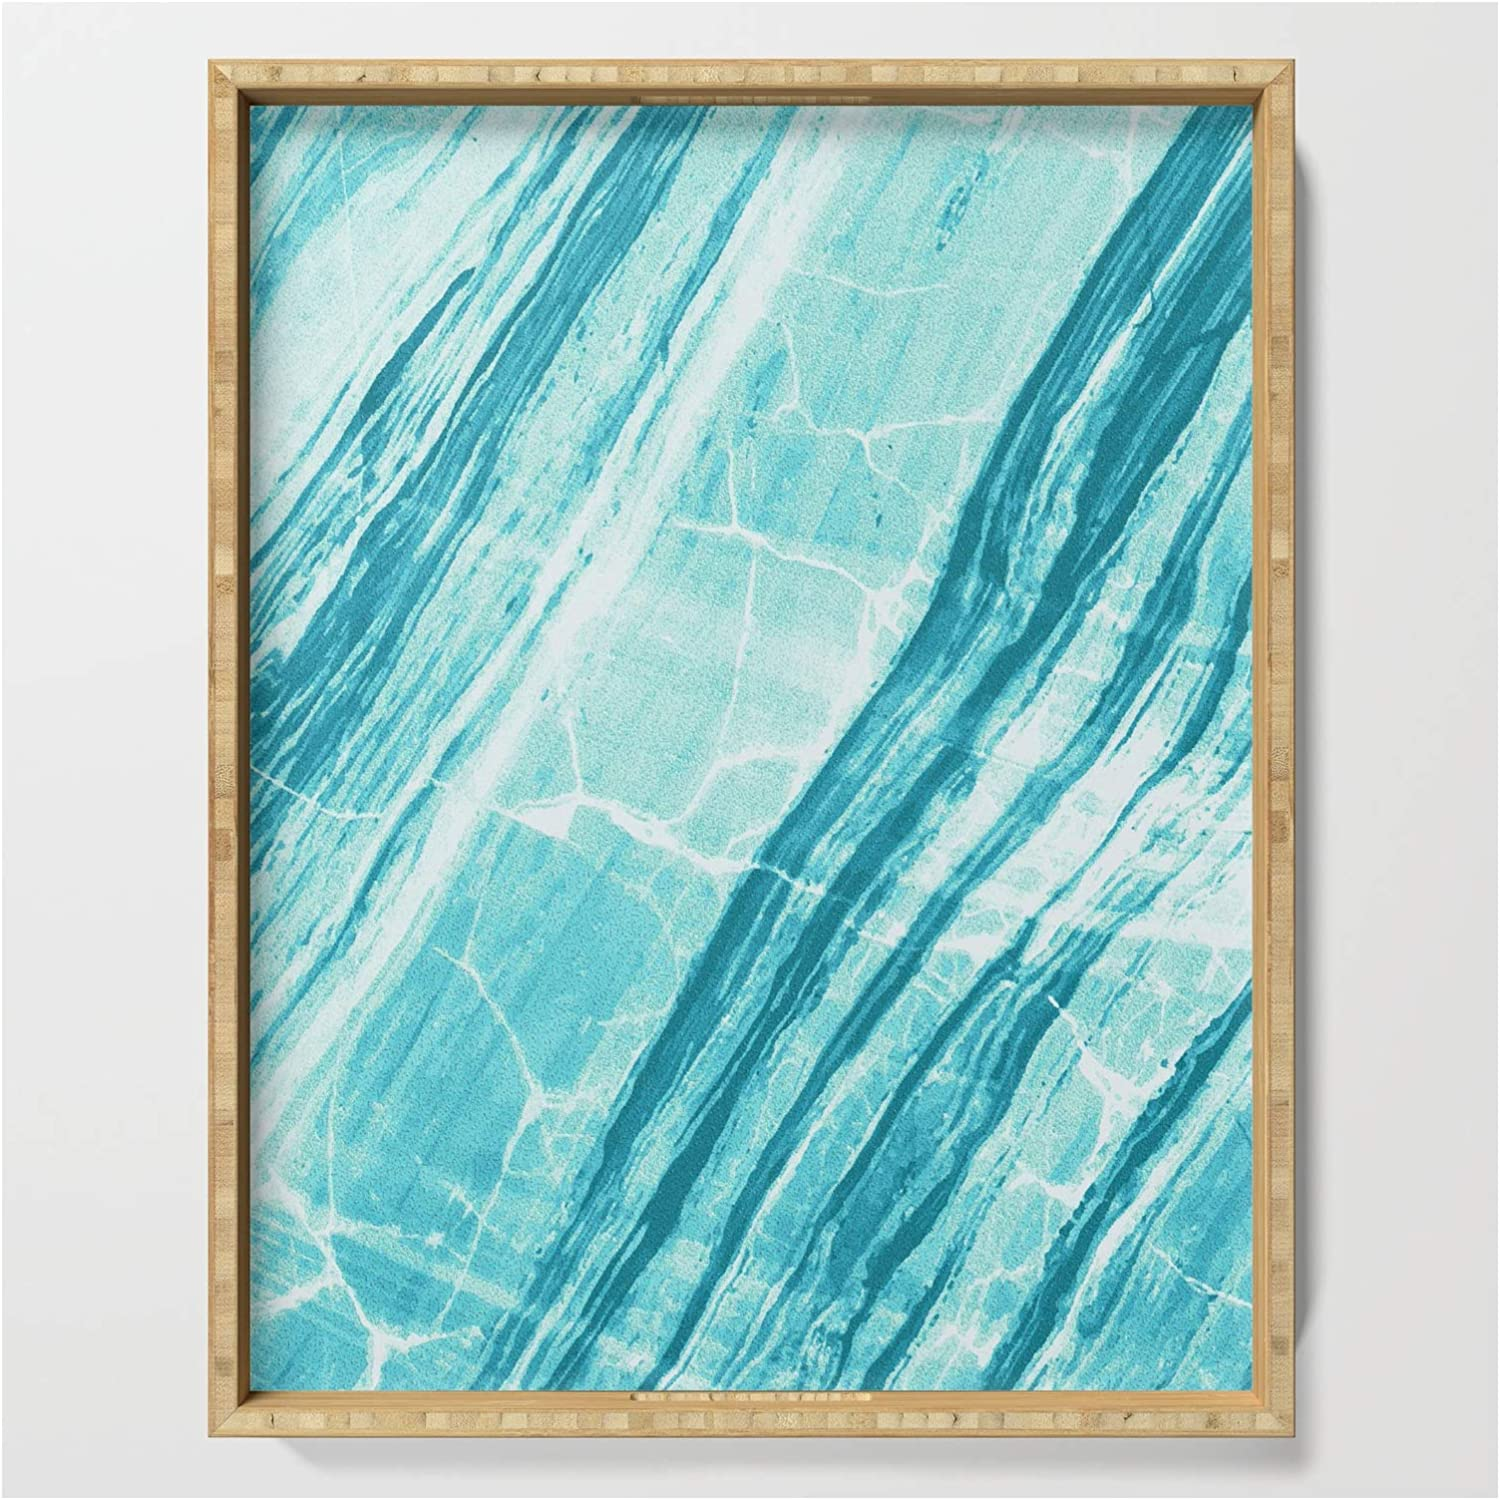 Detroit Mall Abstract Marble - Teal Turquoise Serving Silverpegasus on Sale SALE% OFF by Tra